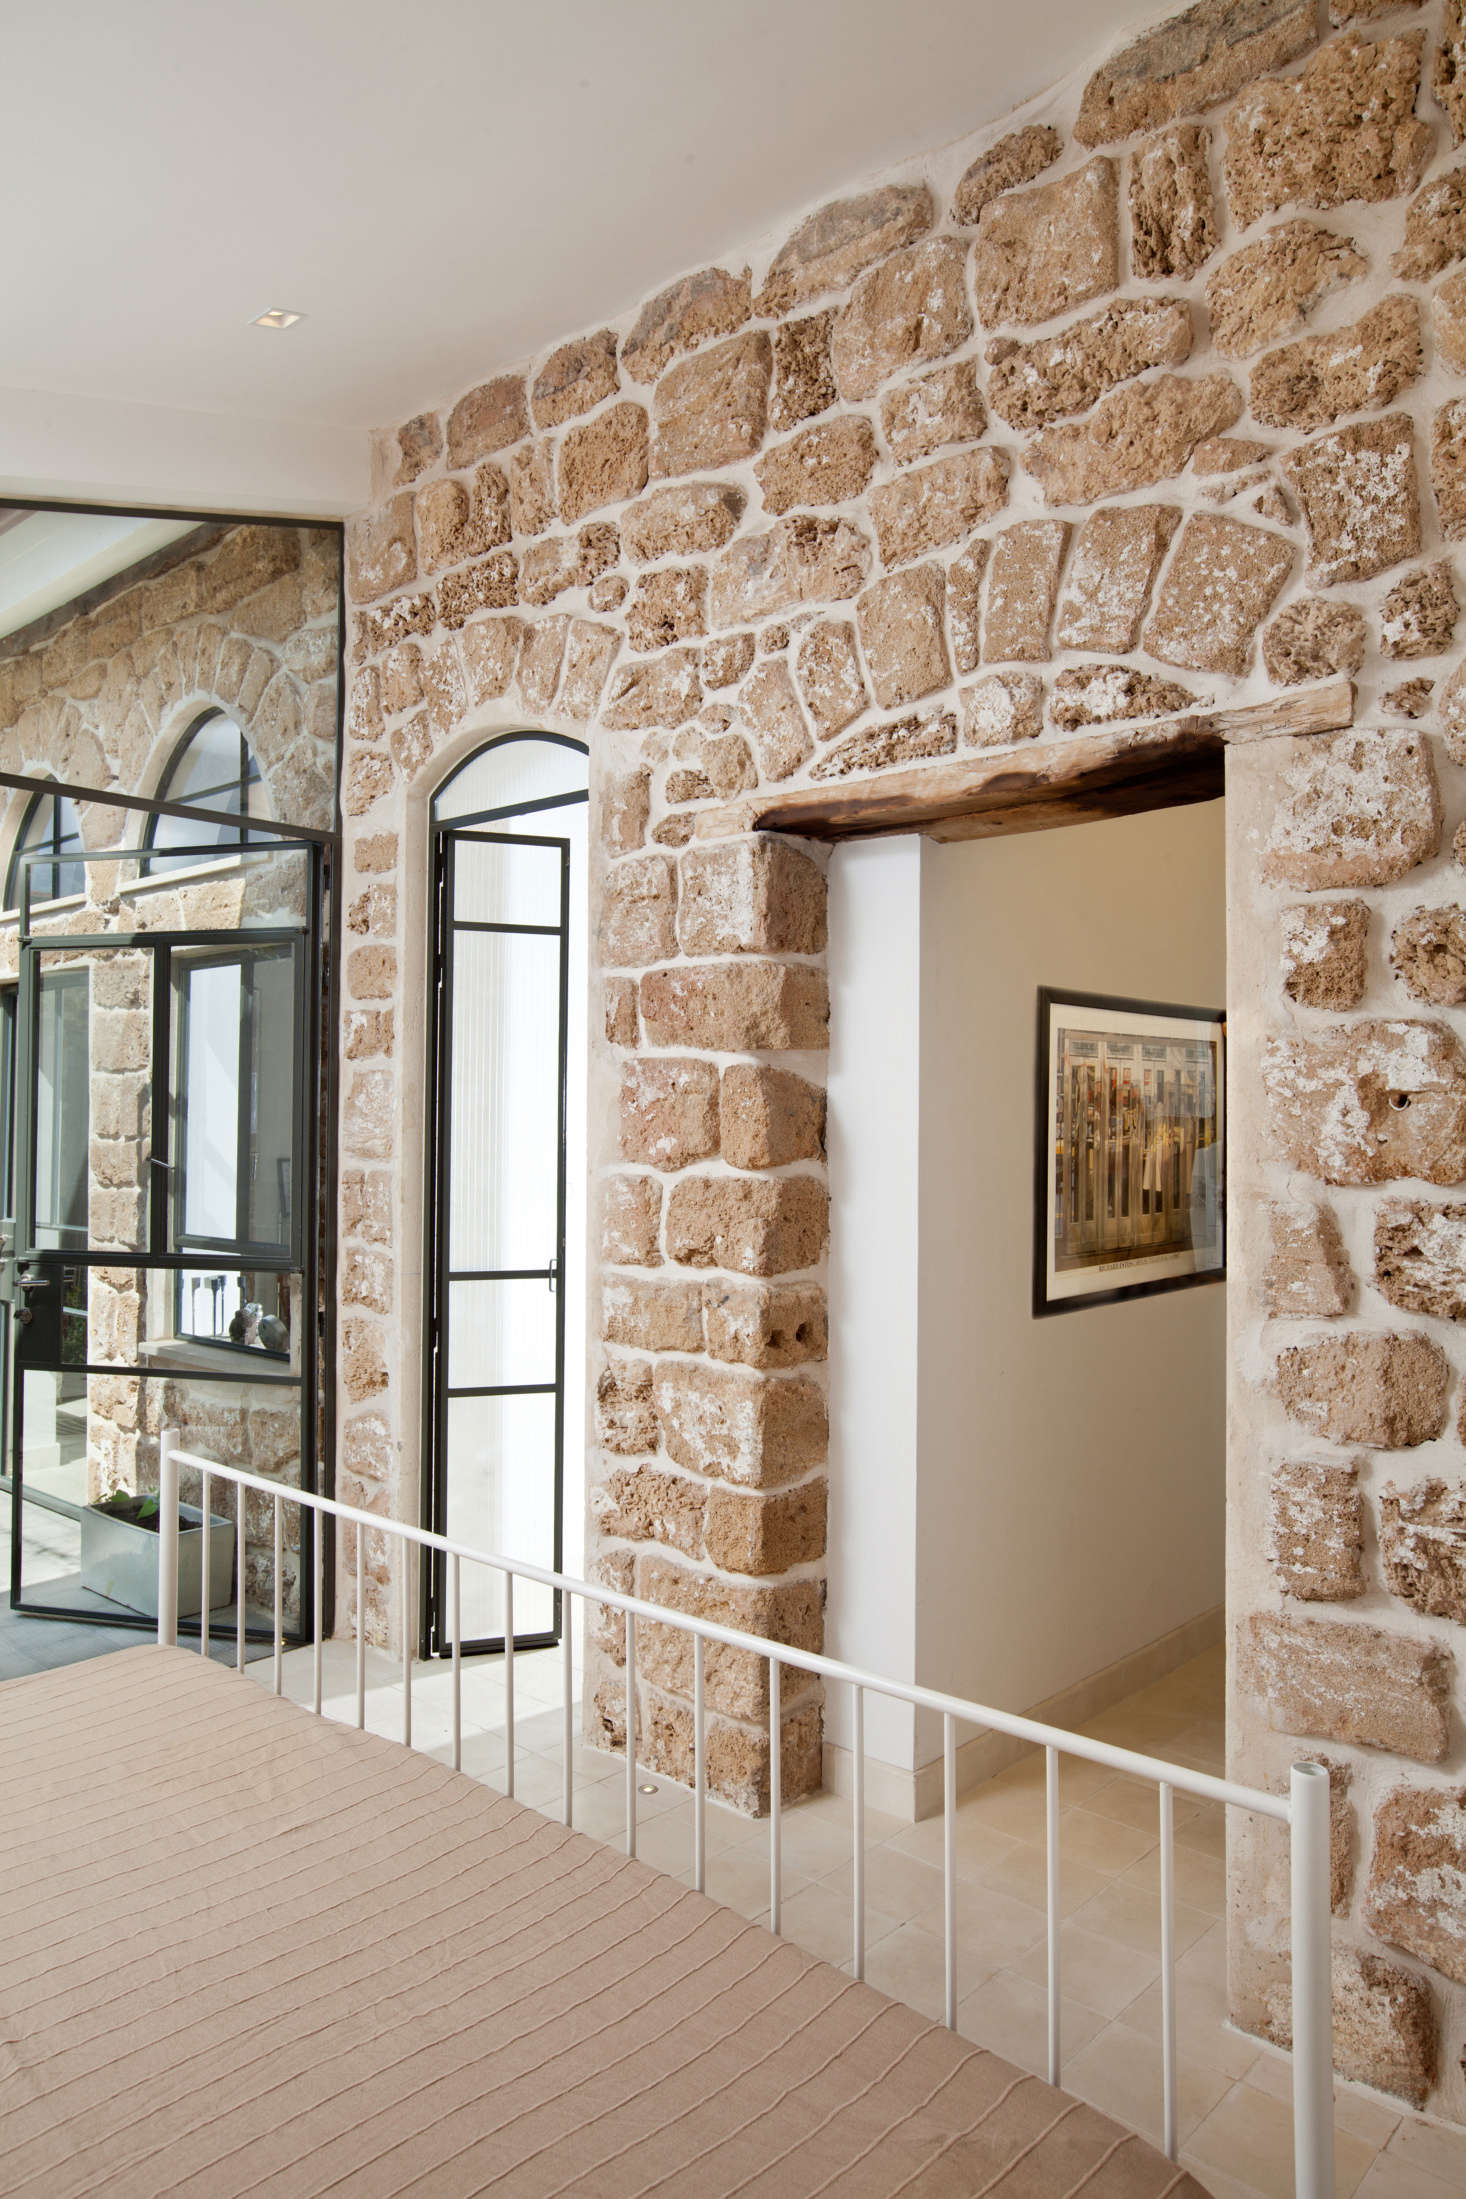 To contrast with the original limestone wall and maintain a feeling of openness, Dvir and Canetti added walls and doors made of glass and steel, like these in the guest bedroom.